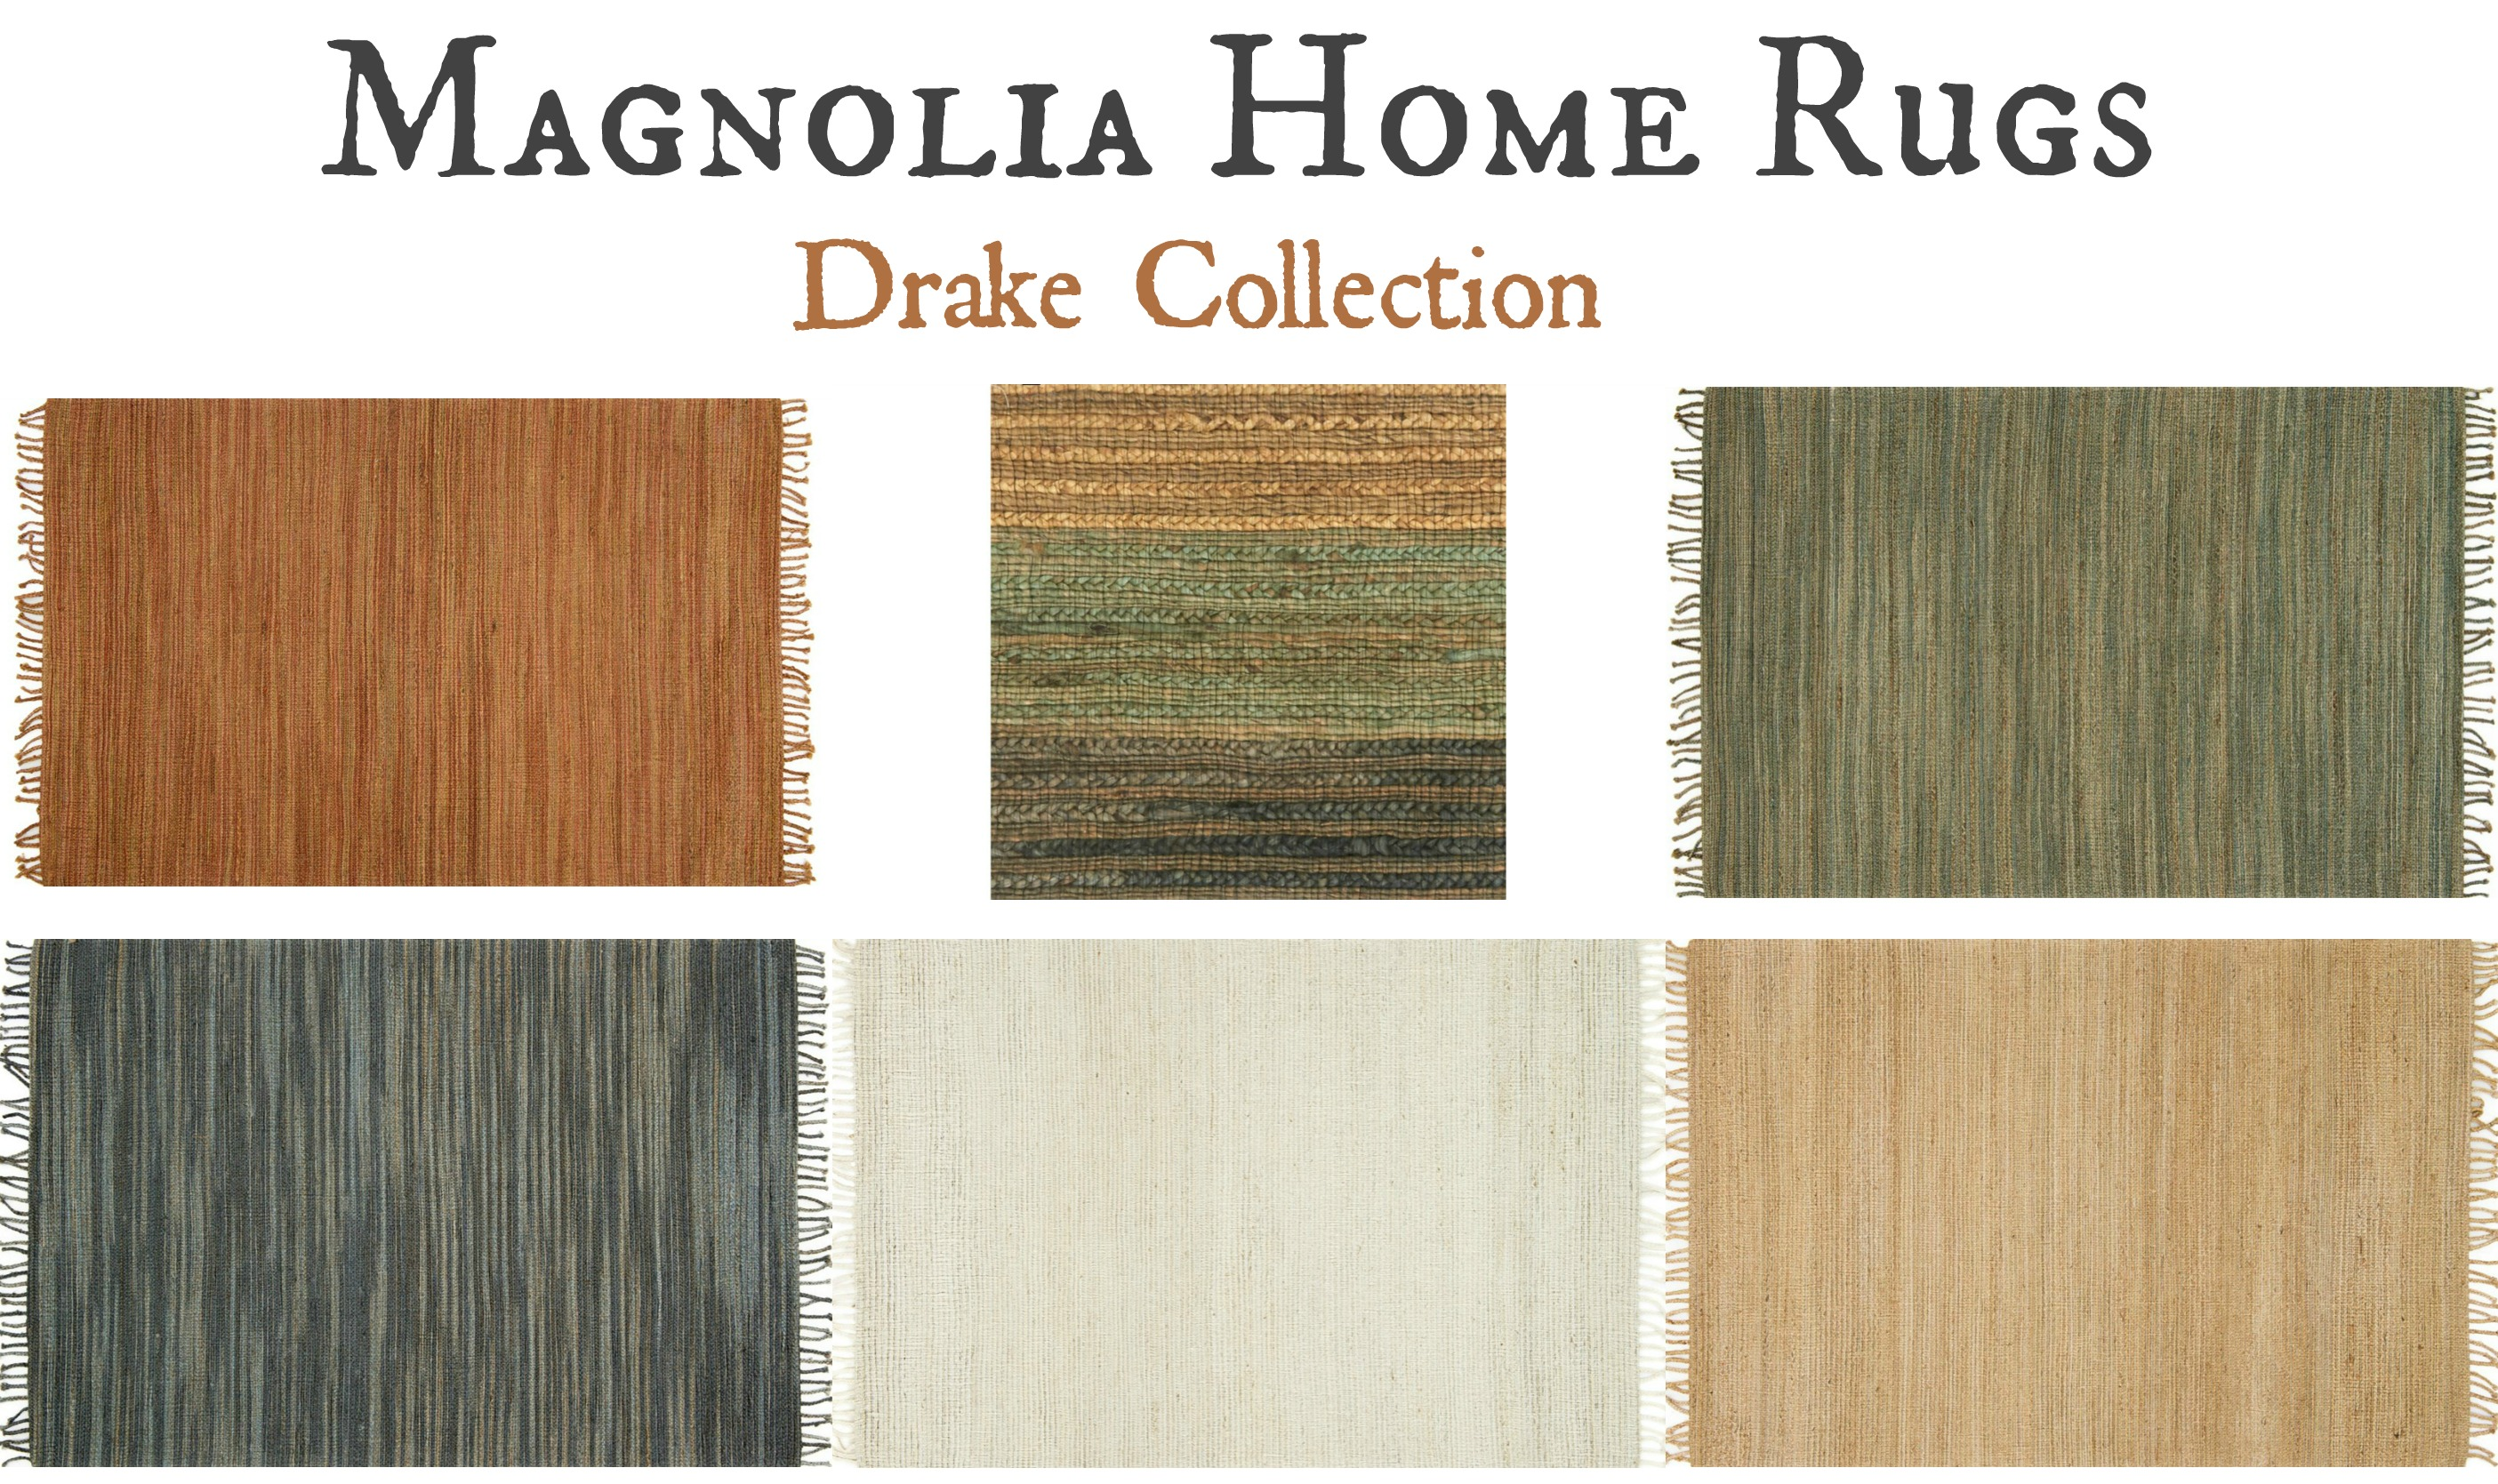 Magnolia Home Rugs Drake Collection